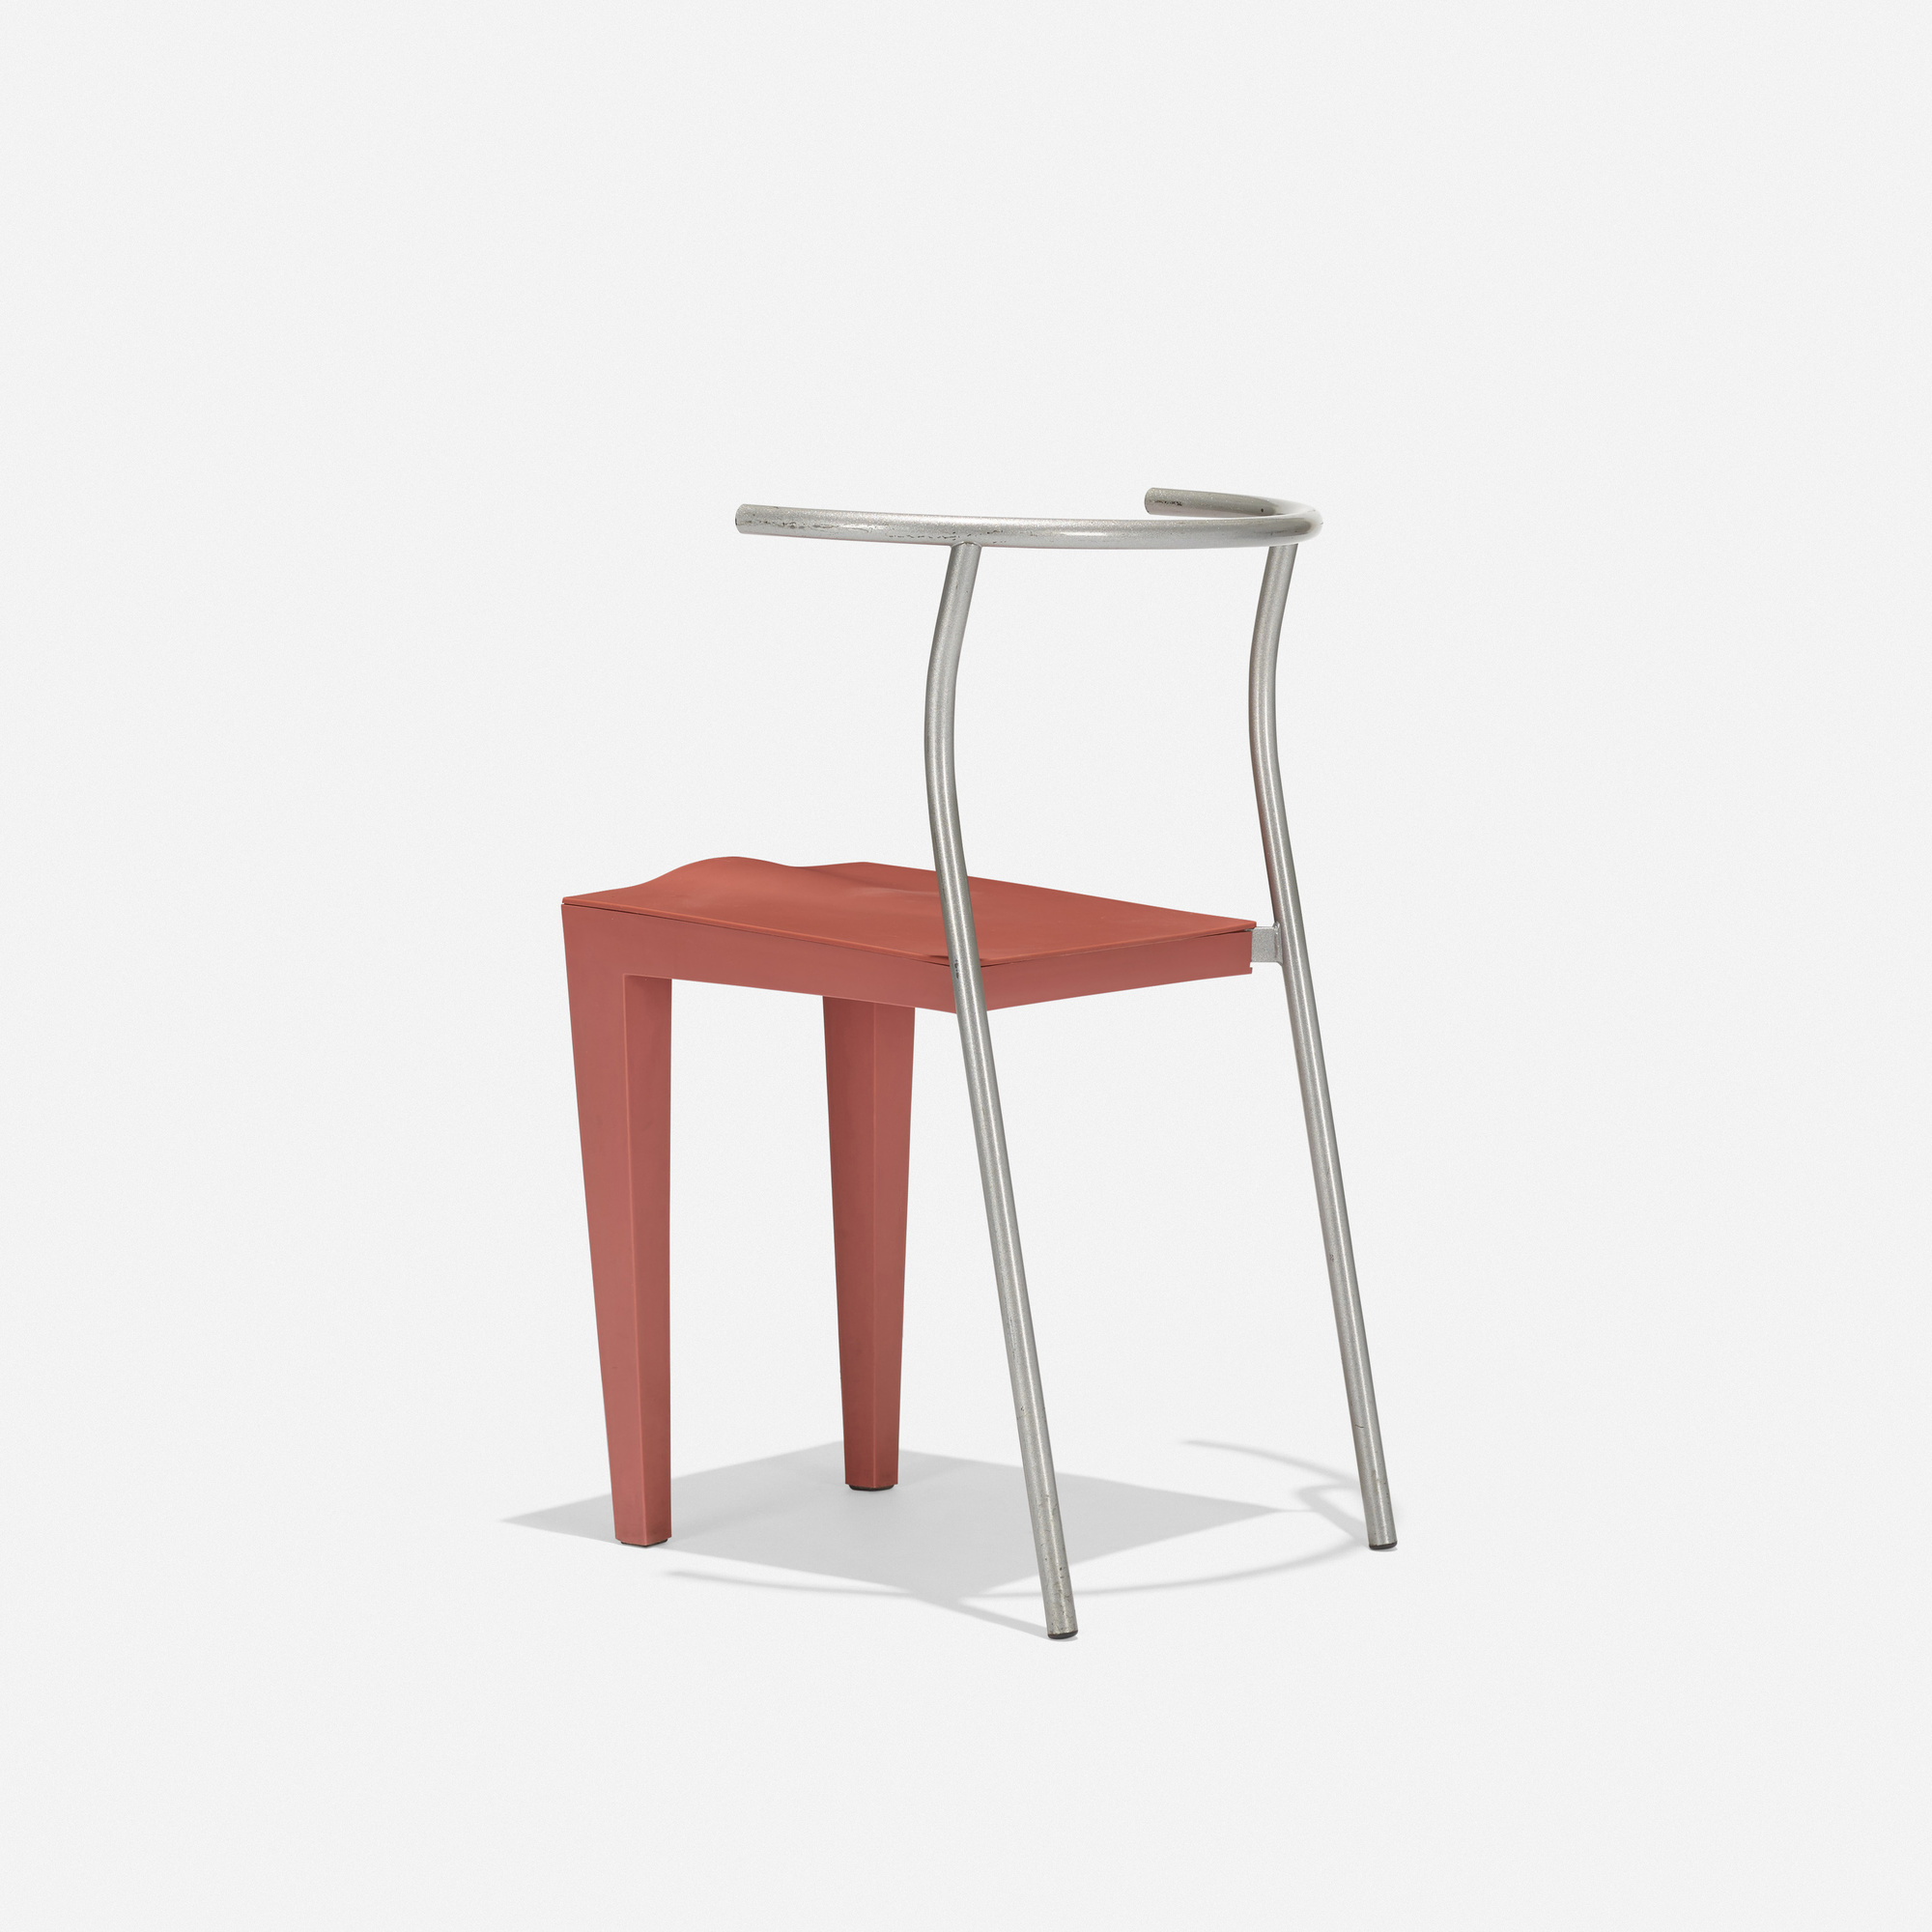 336: Philippe Starck / Dr. Glob chair (3 of 4)